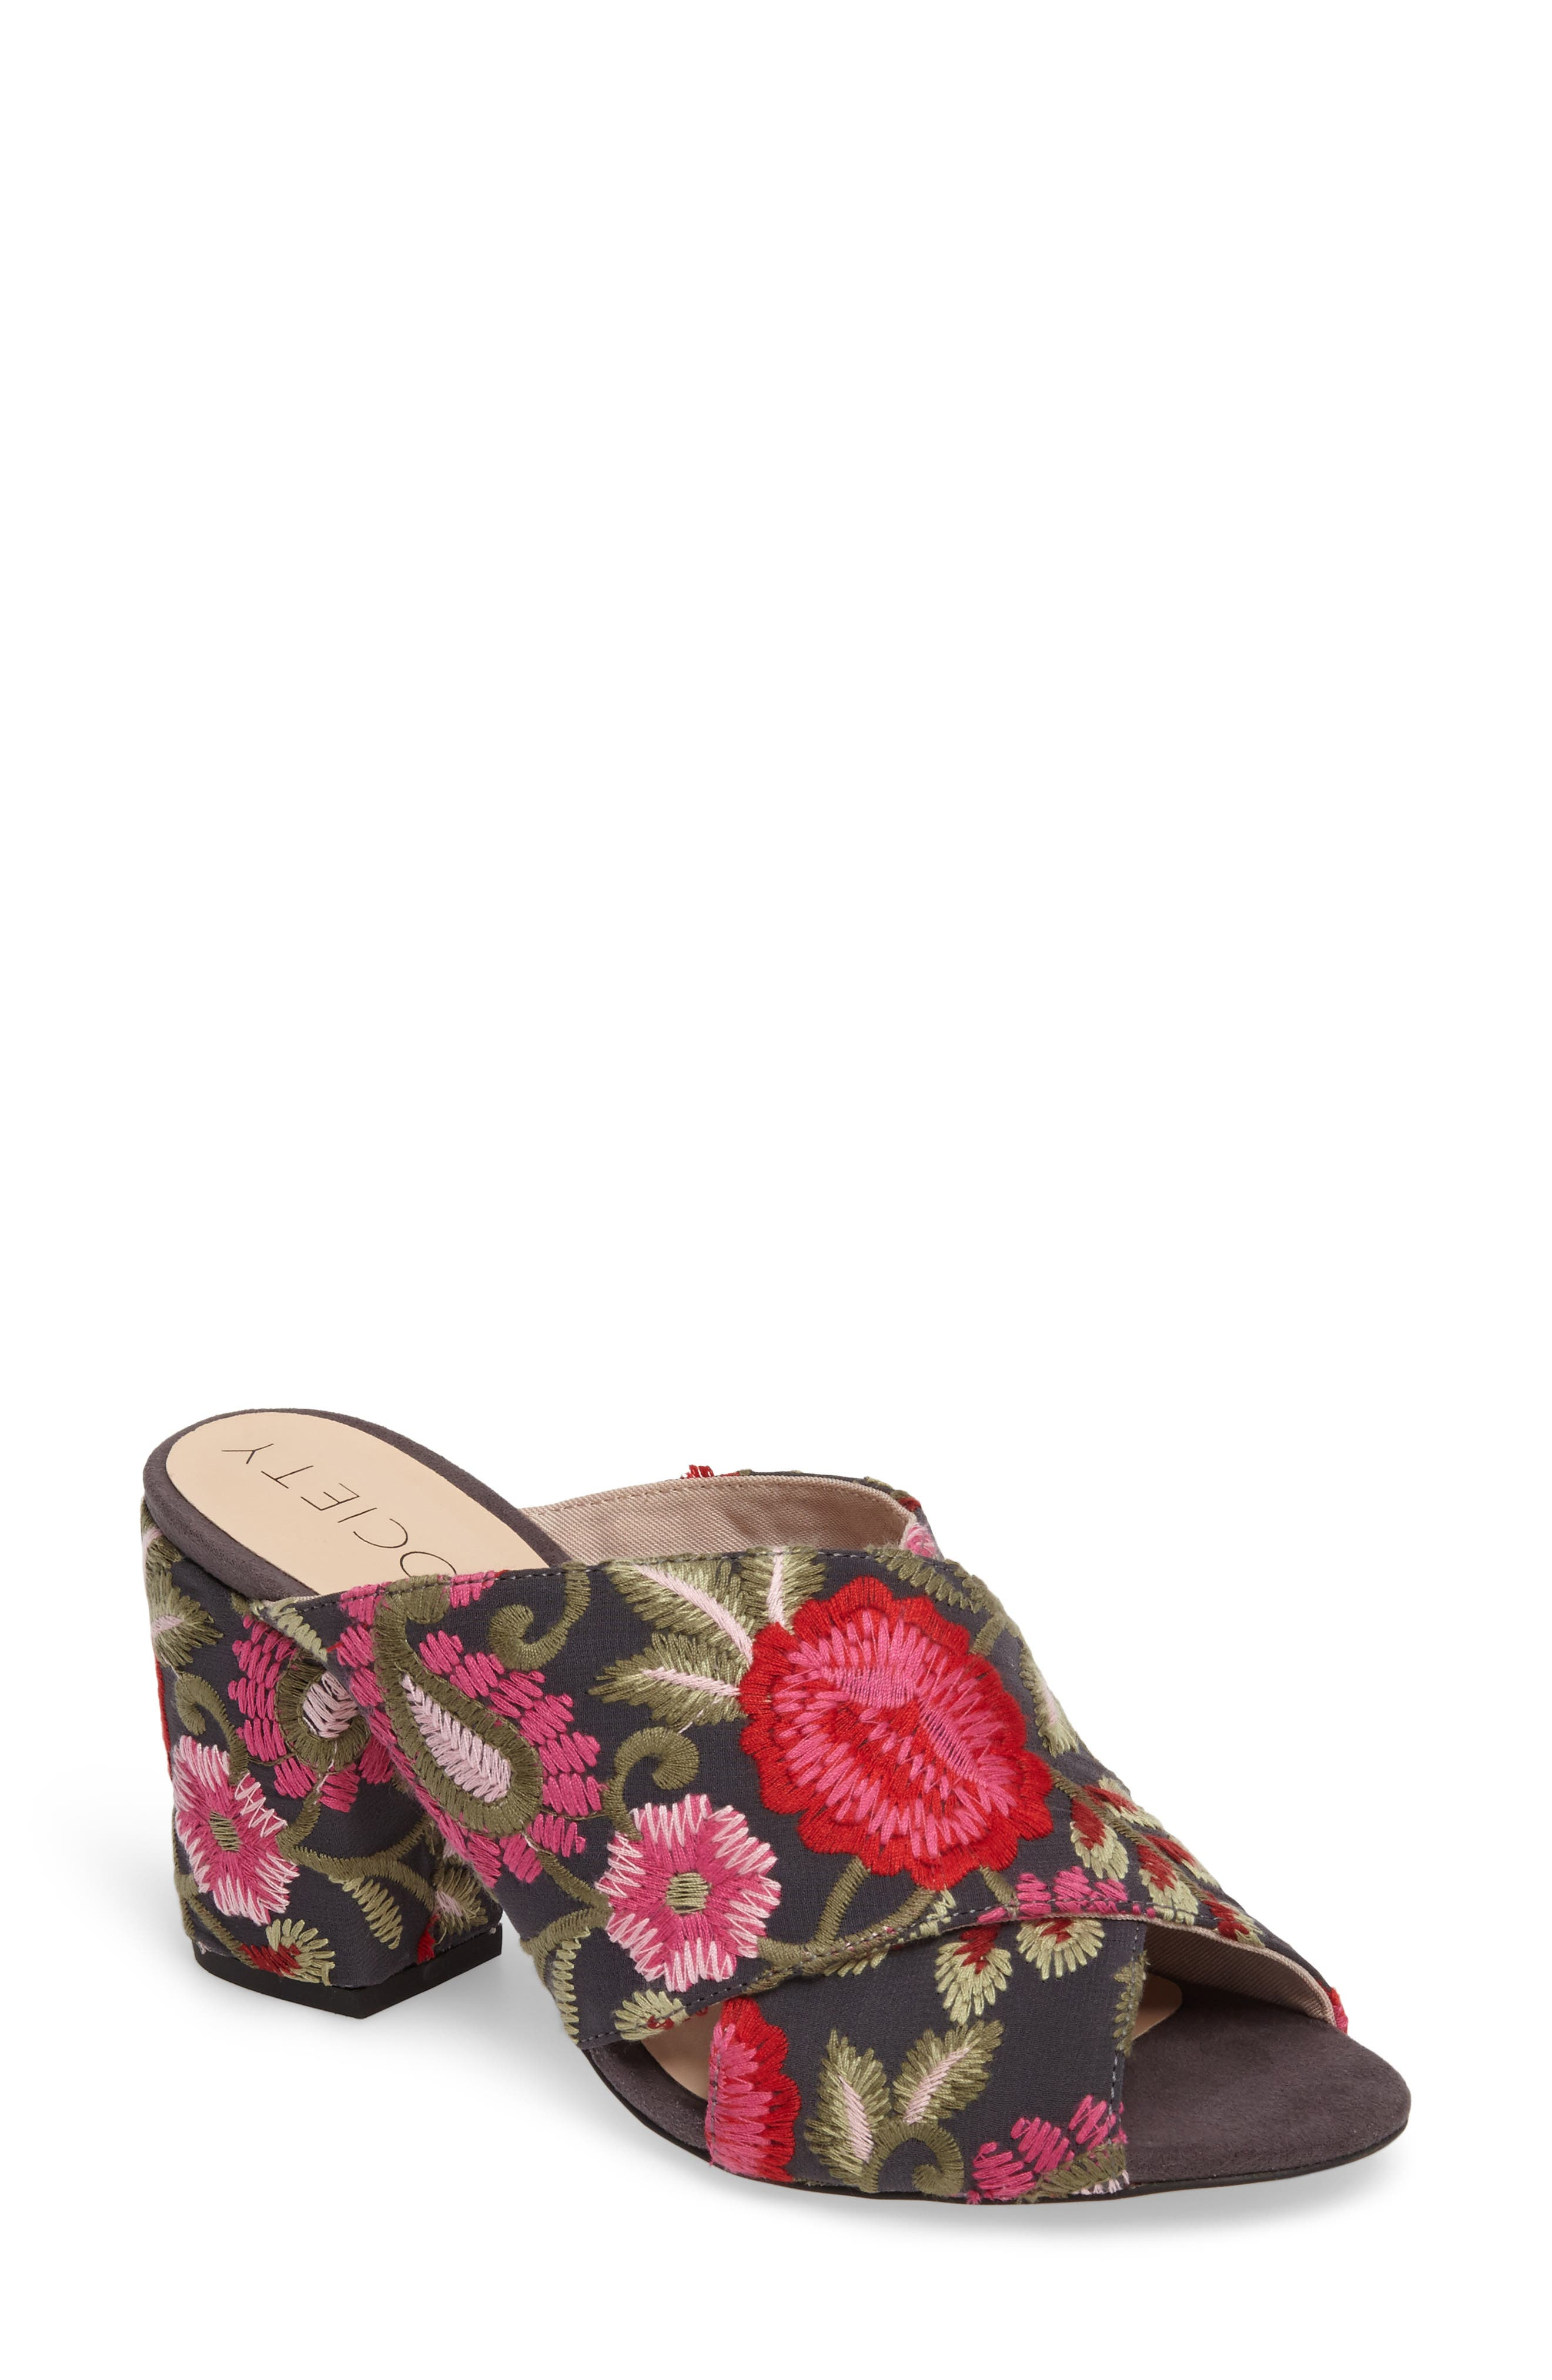 Main Image - Sole Society Luella Flower Embroidered Slide (Women)